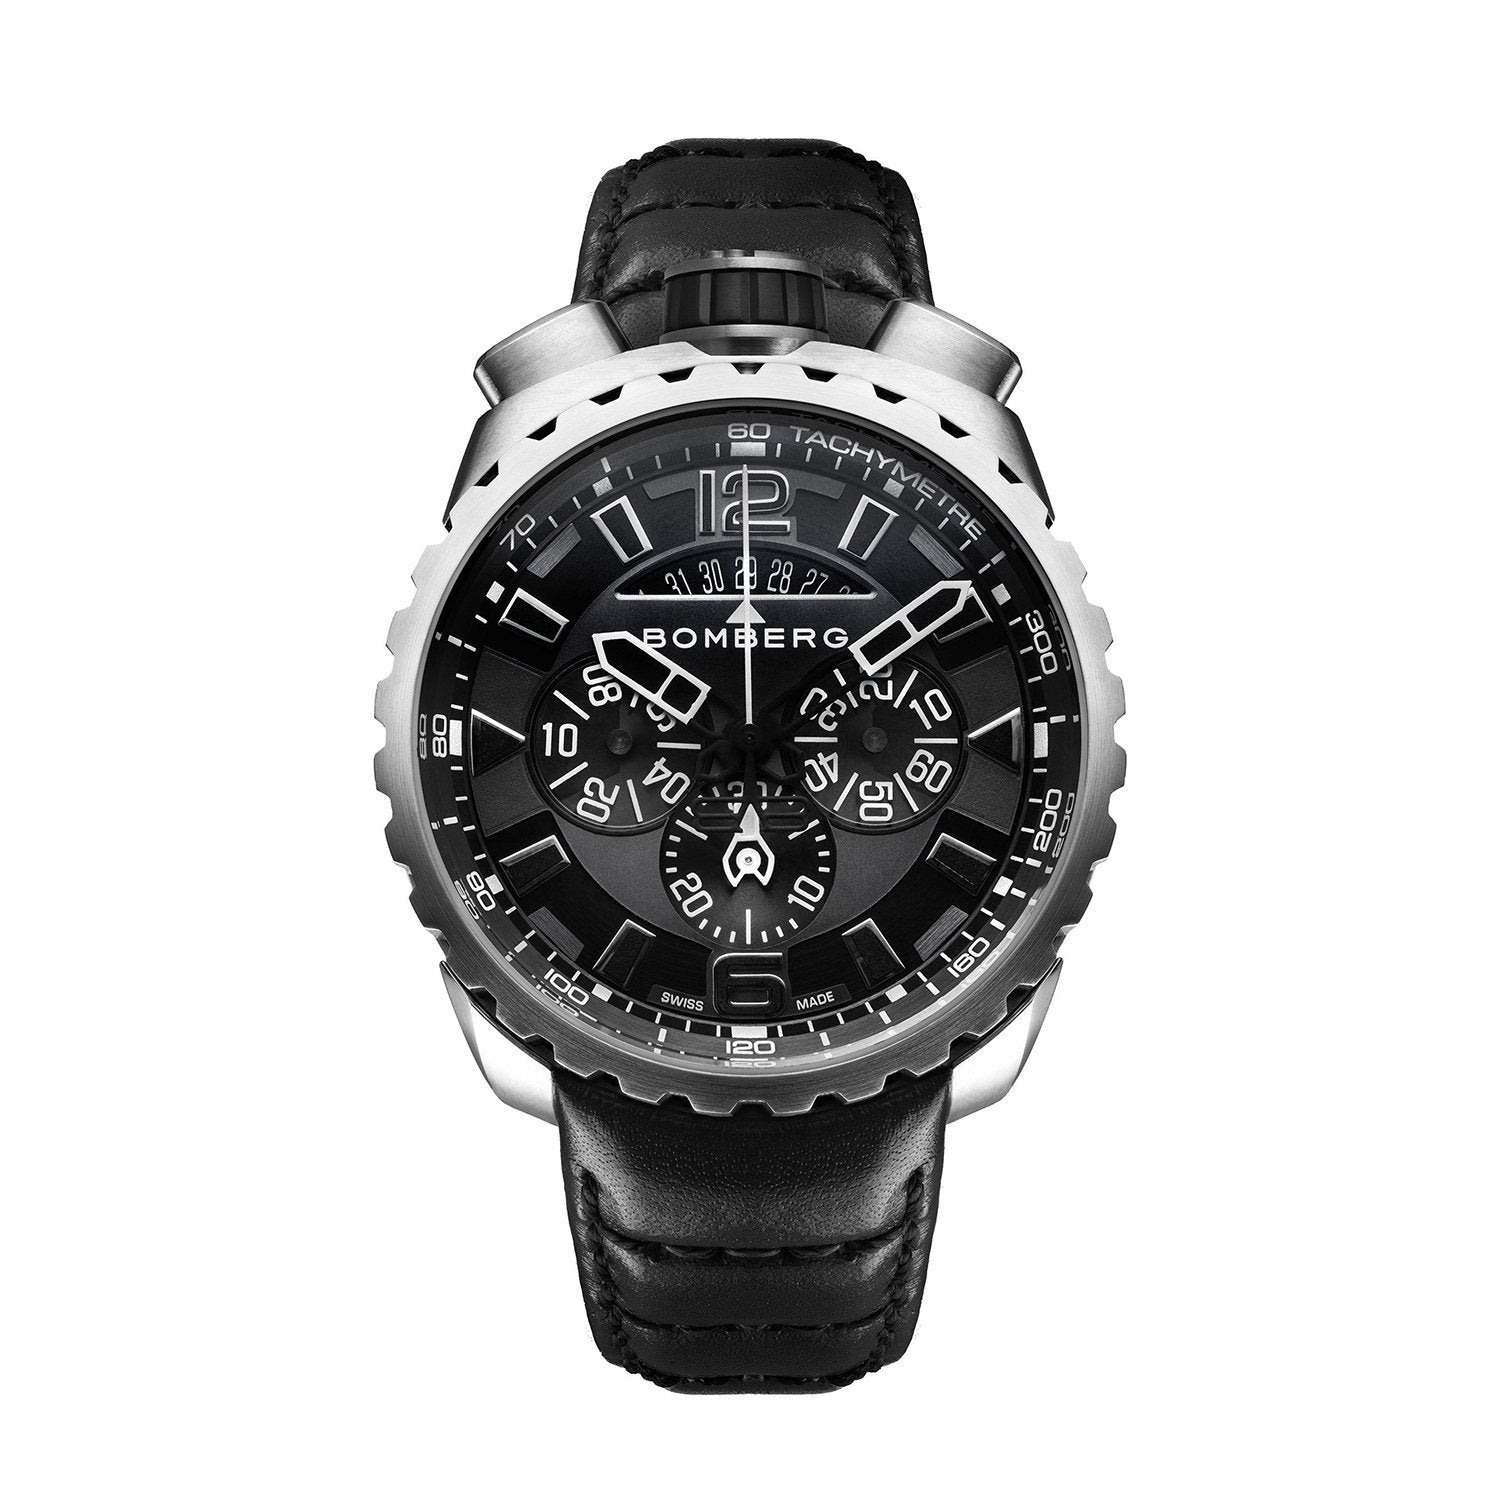 Bomberg BOLT-68 Chronograph - Watches & Crystals